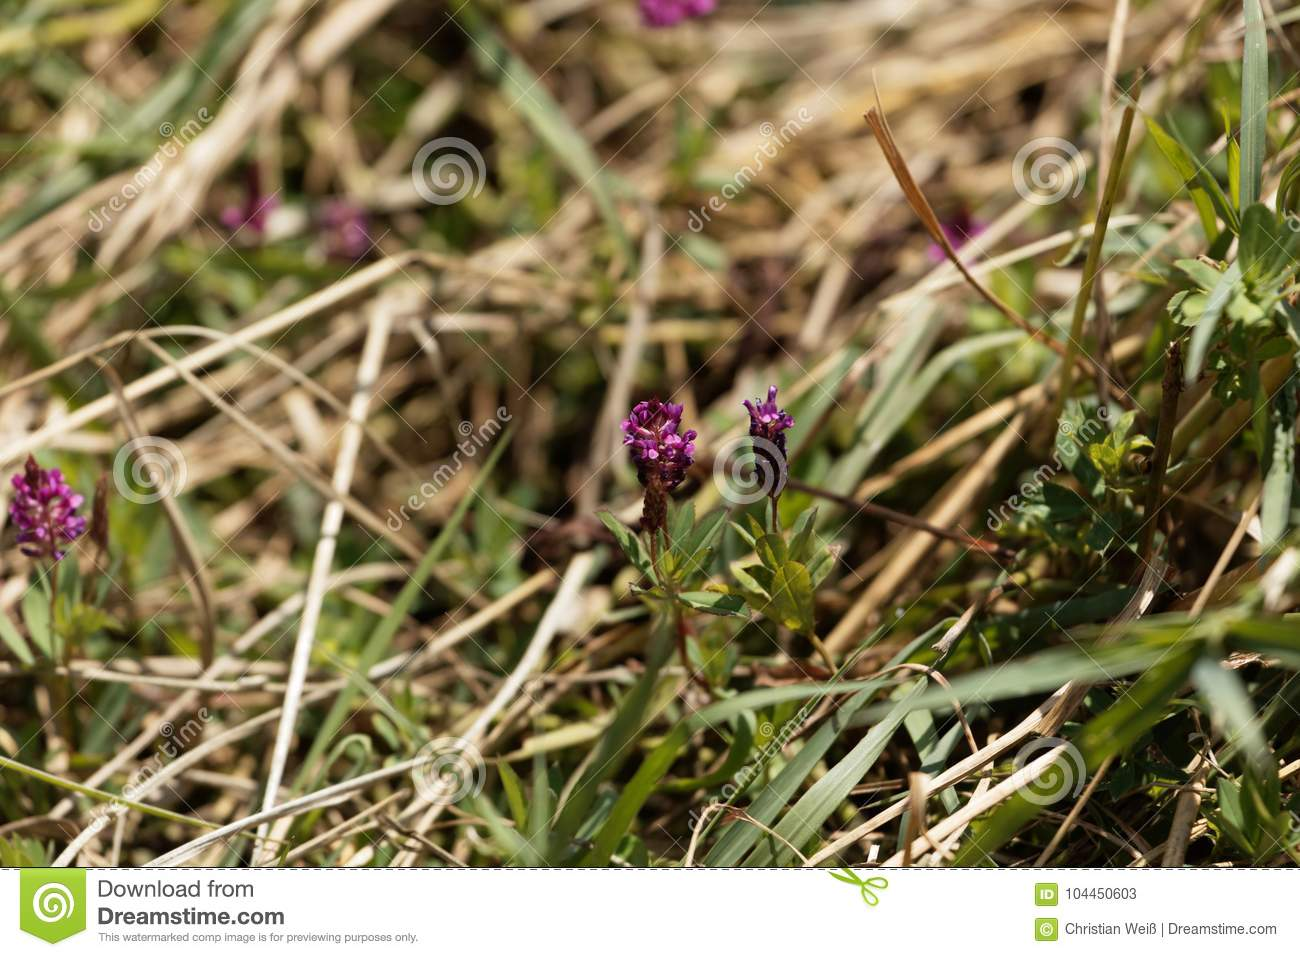 Flower Of The Clover Trifolium Tempense Stock Image - Image of ...